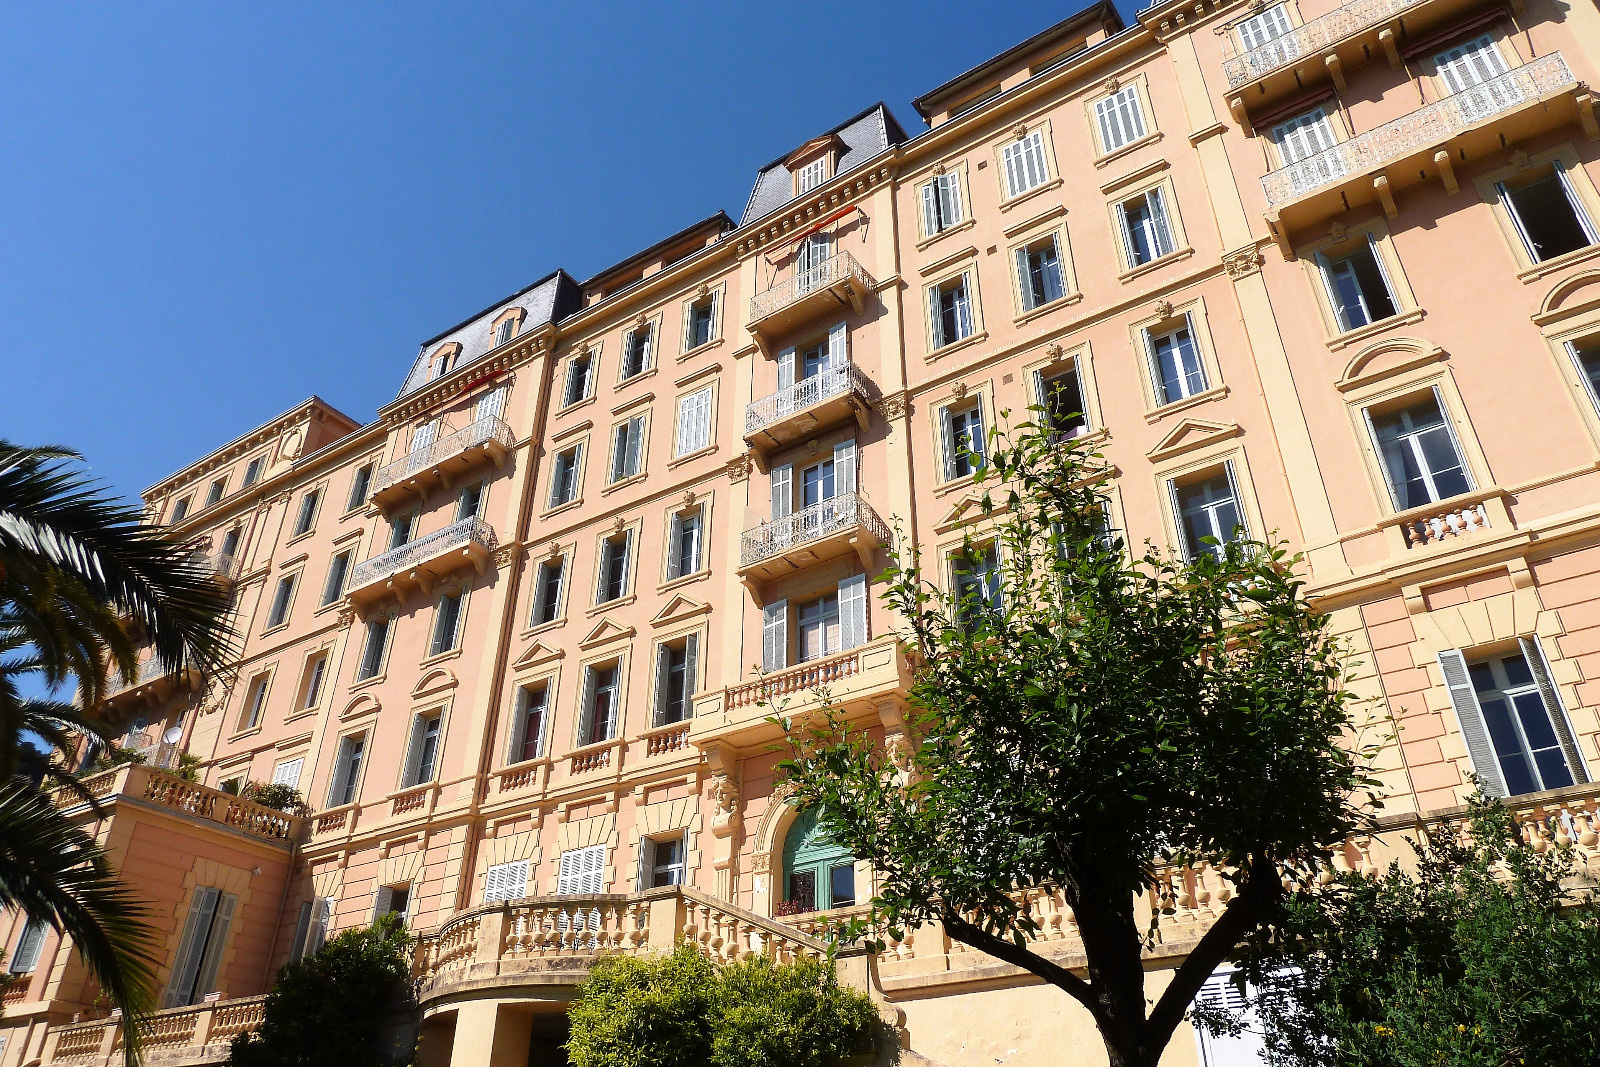 Agencia immobilier agence immobili re cannes et le for Locations agences immobilieres